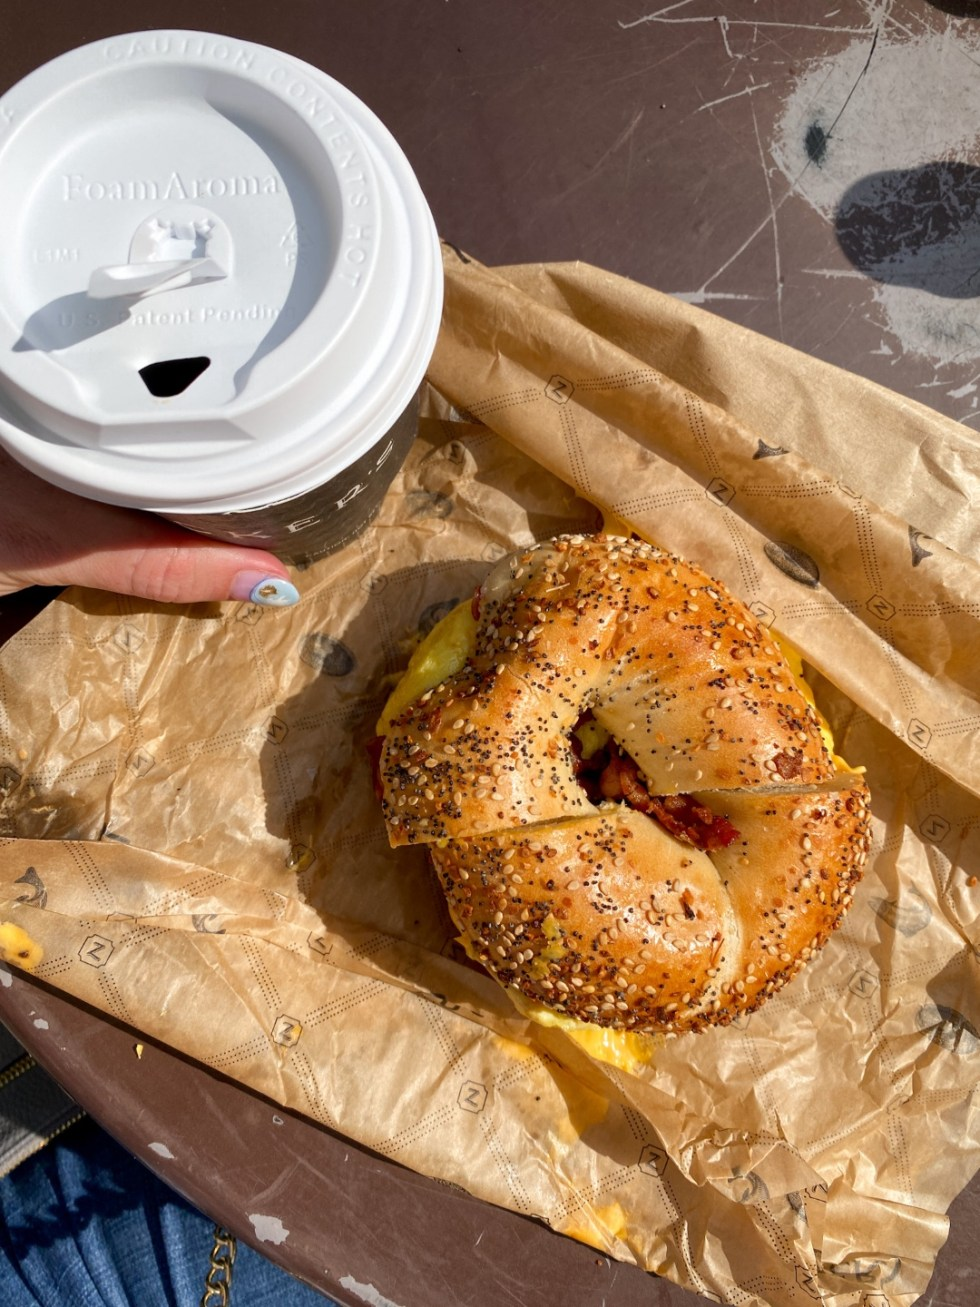 NYC Summer Weekend: Things to Do in NYC in the Summer - I'm Fixin' To - @imfixintoblog   NYC Summer Weekend by popular NC travel blog, I'm Fixin' To: image of a bagel sandwich.